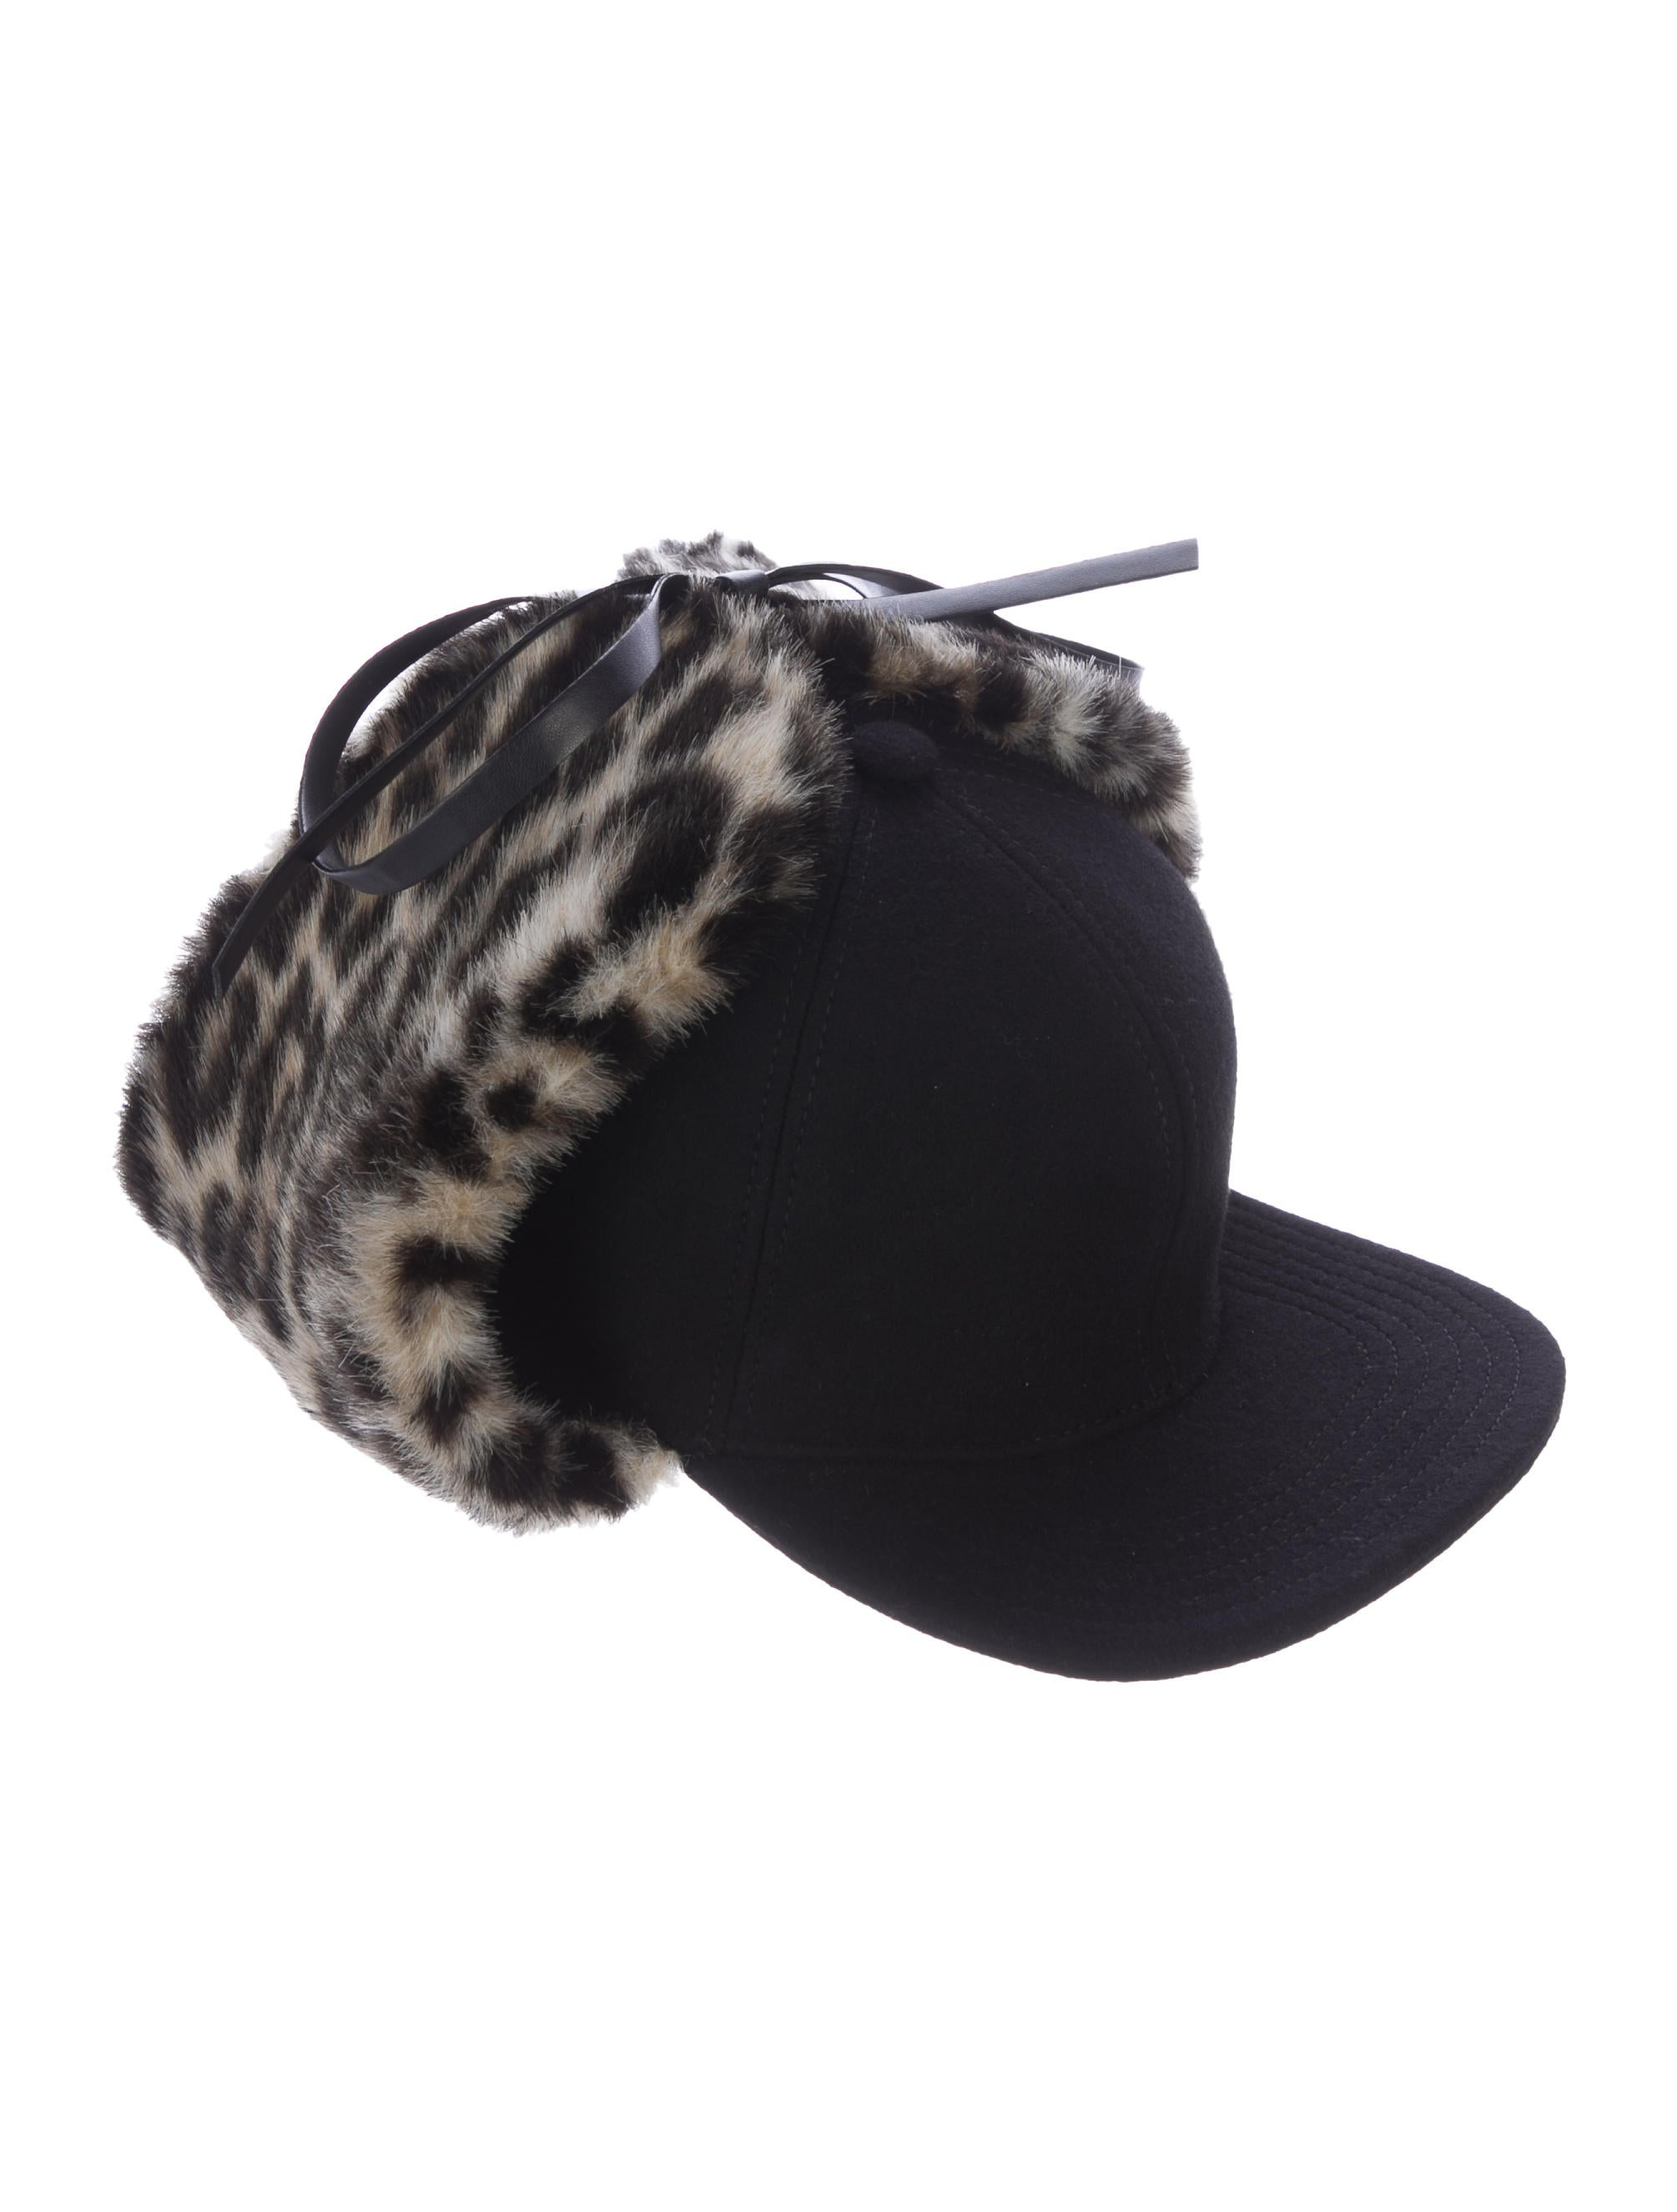 stella mccartney faux fur hat w tags accessories. Black Bedroom Furniture Sets. Home Design Ideas